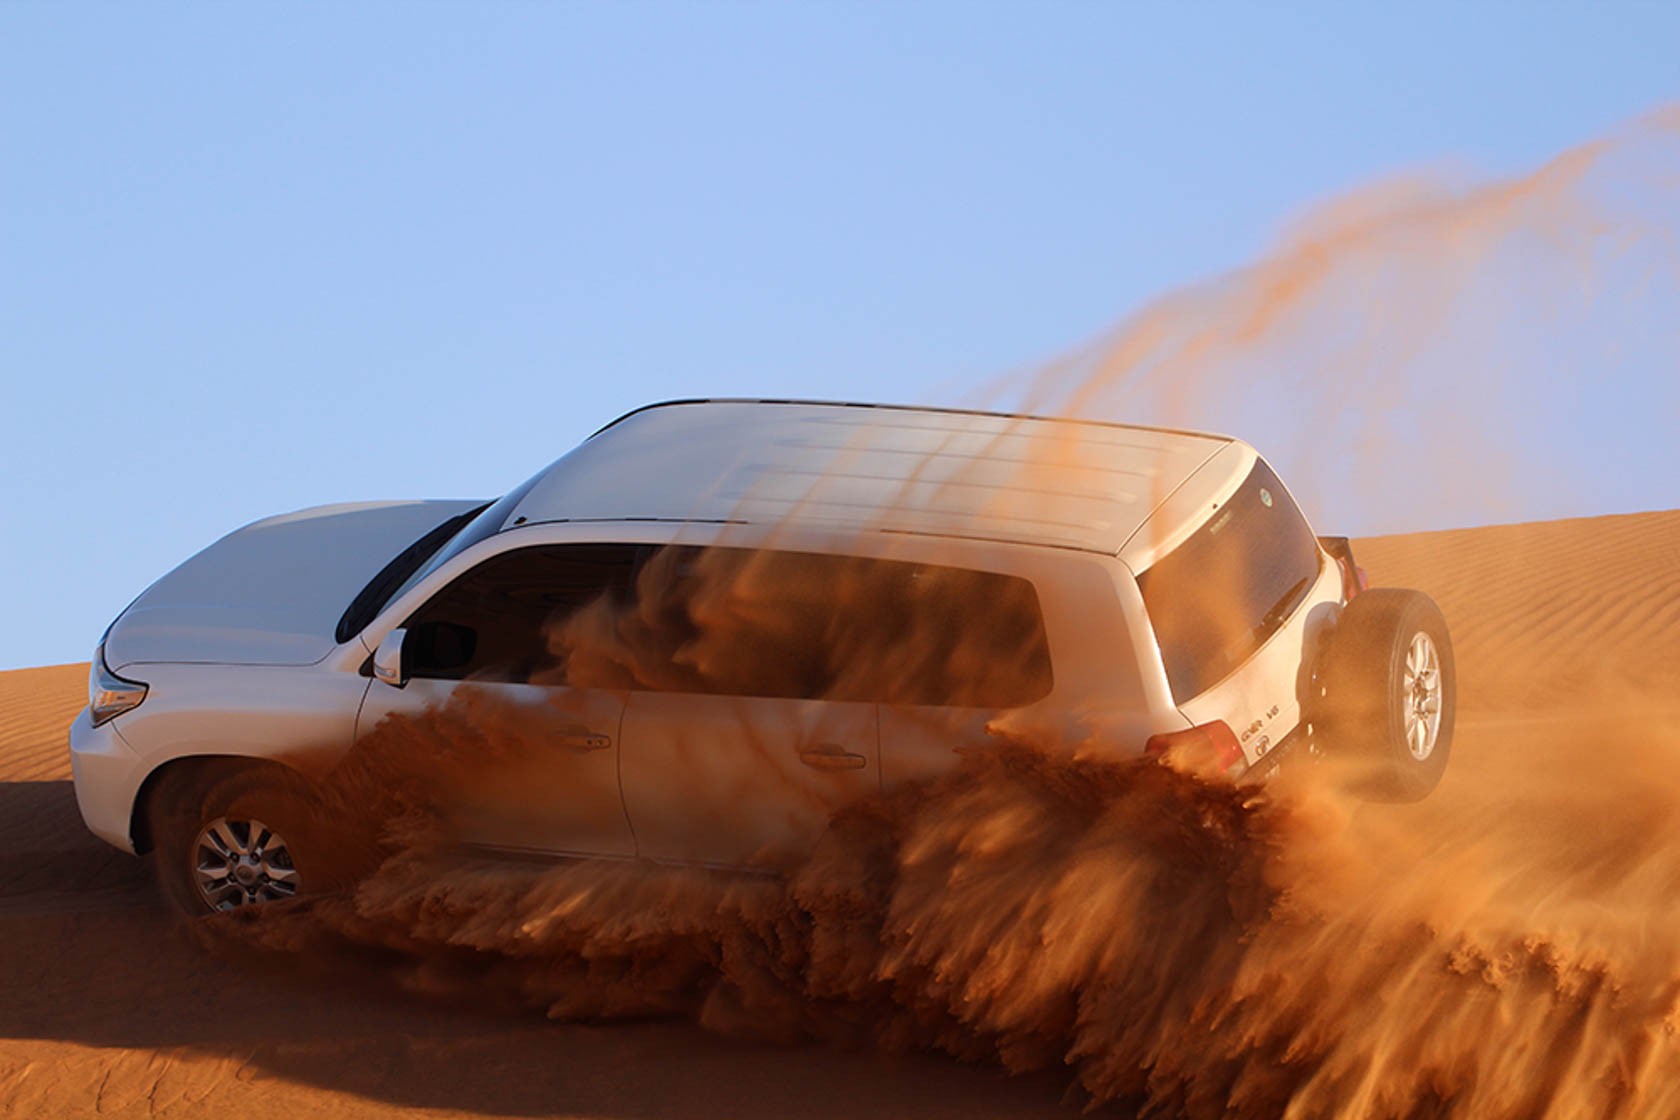 White 4X4 driving through sand dunes taken with Canon EOS 1300D DSLR camera